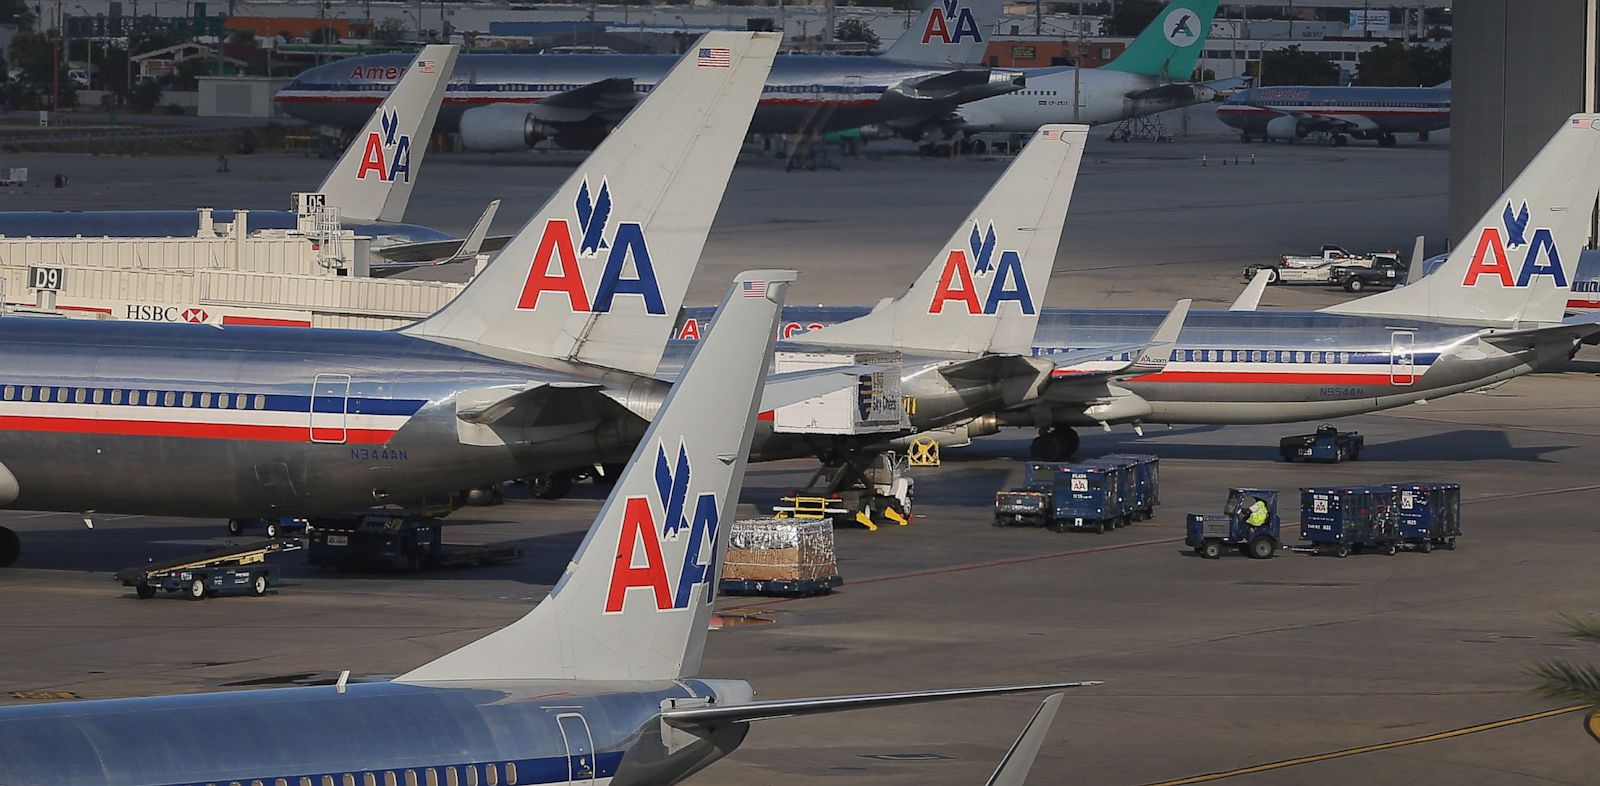 PHOTO: An American Airlines flight attendant is suing the airlines after co-workers accused her of smuggling her pet rats onto her airplane.